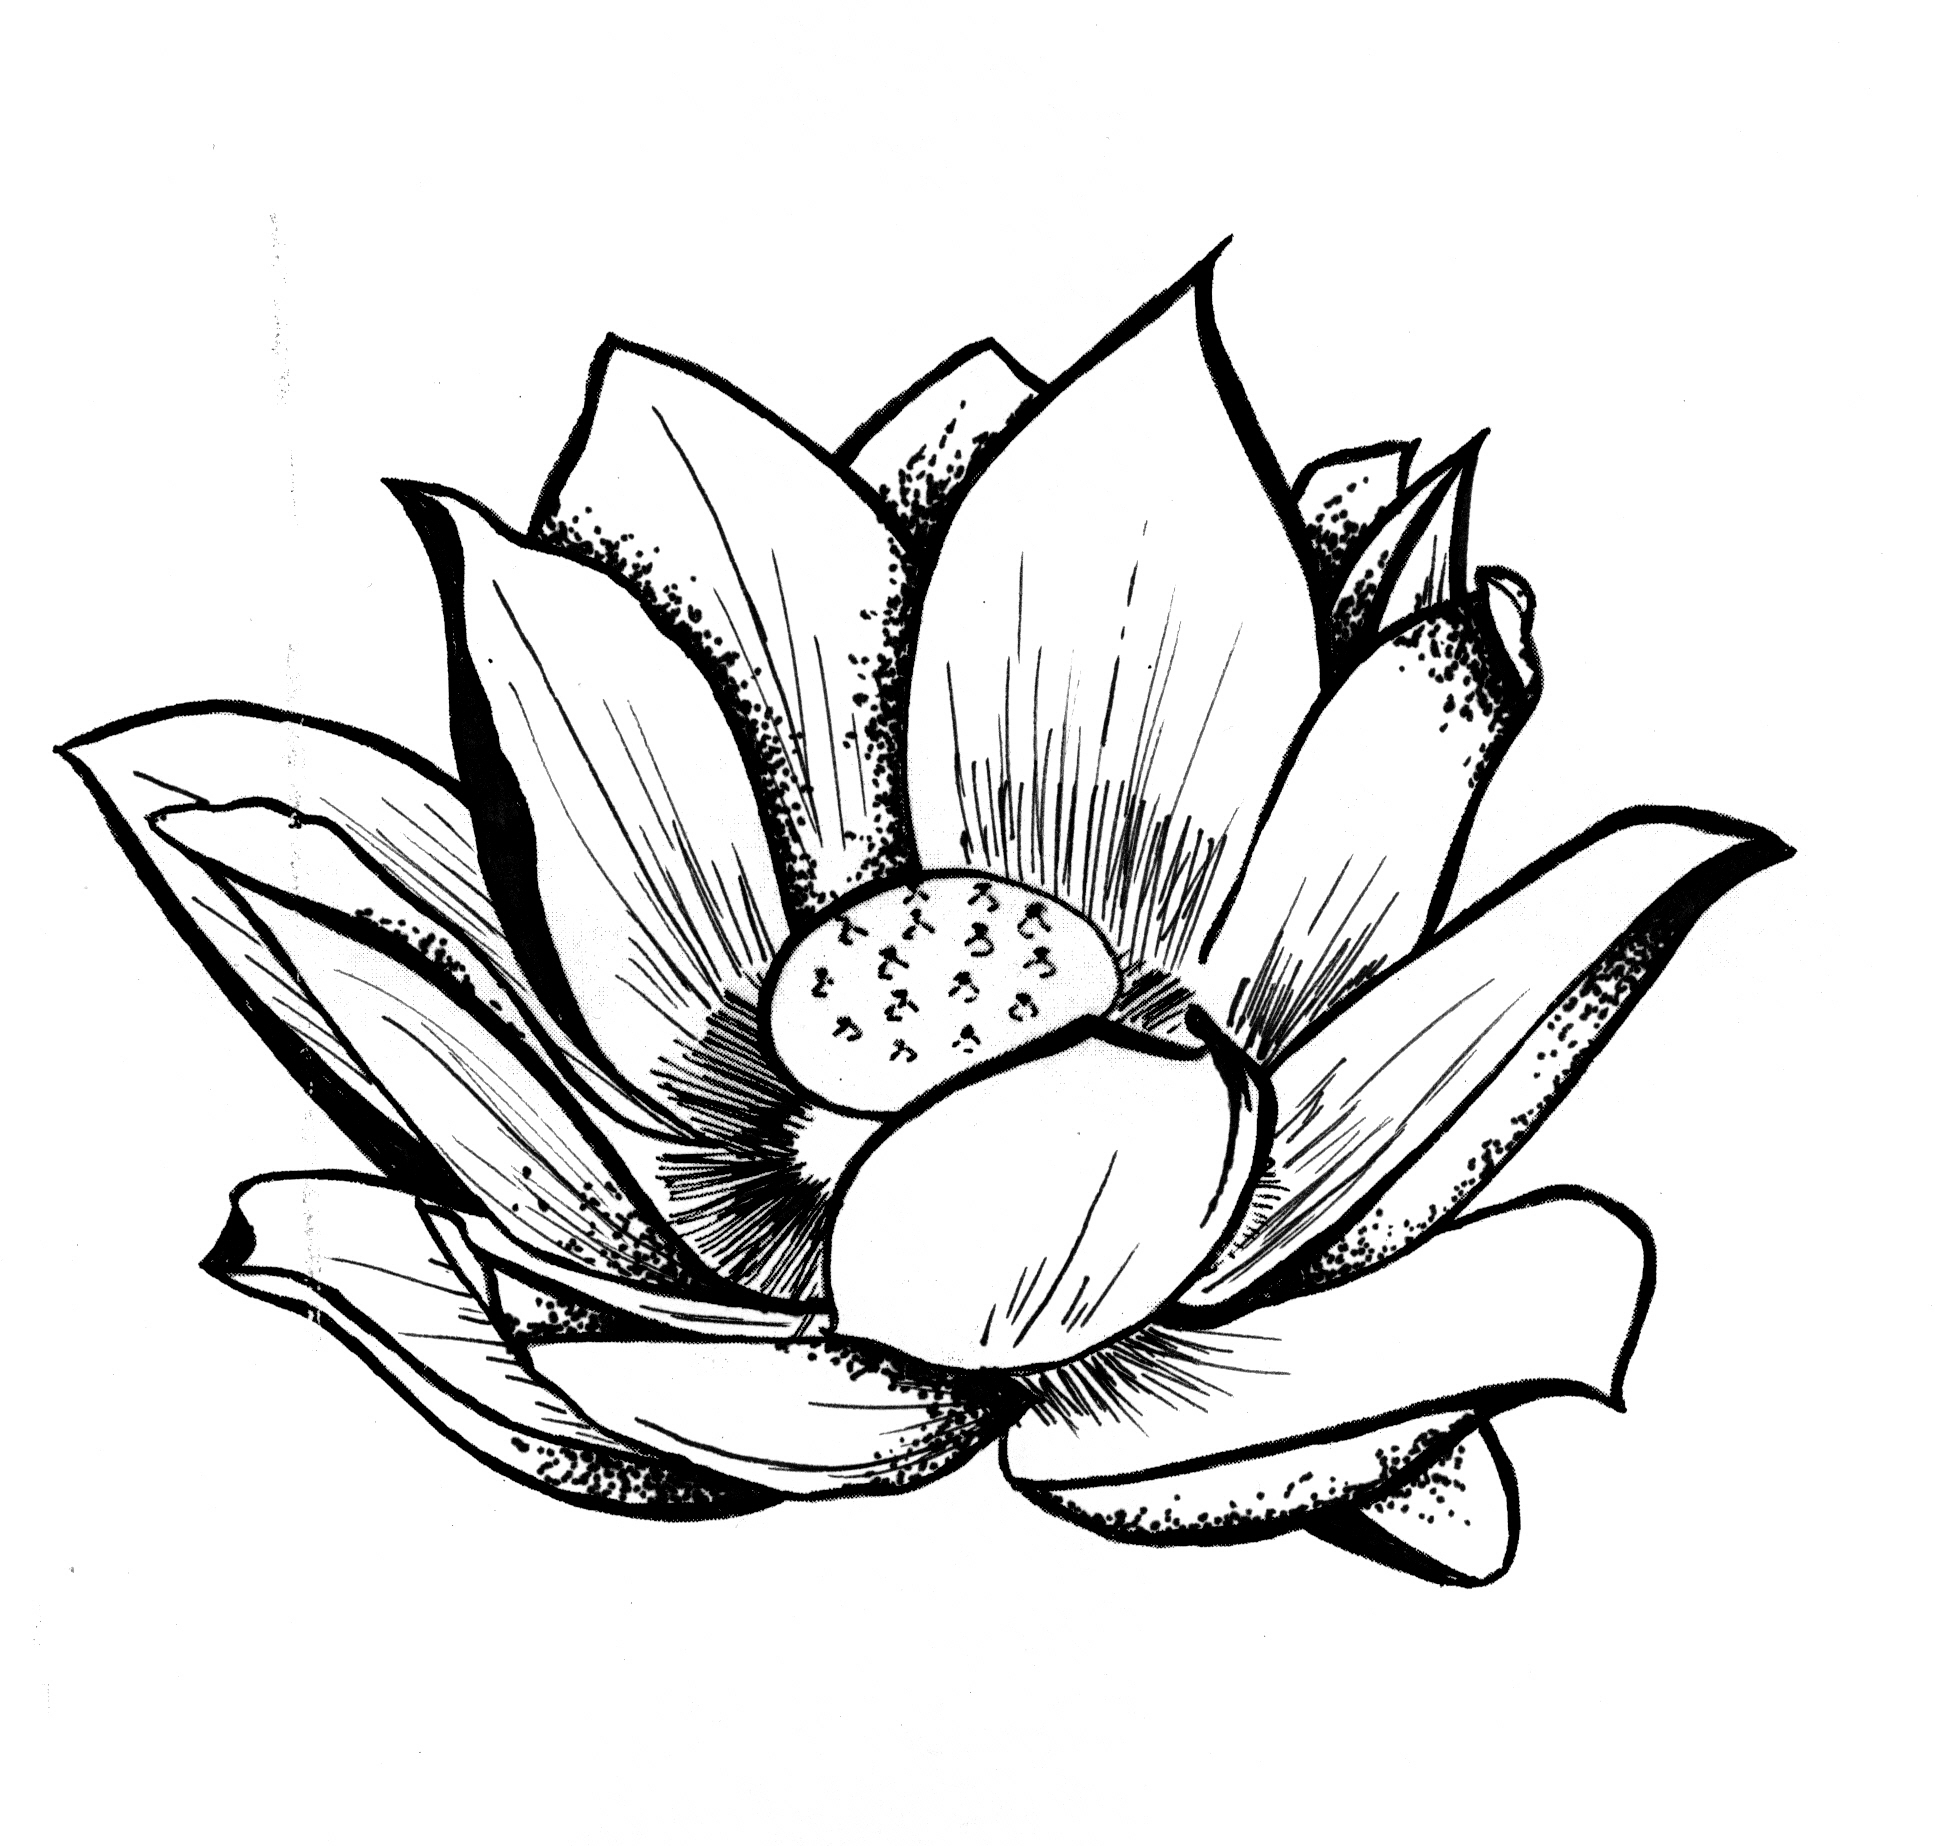 Line Drawing Of Lotus Flower : Lotus line drawing clipart best